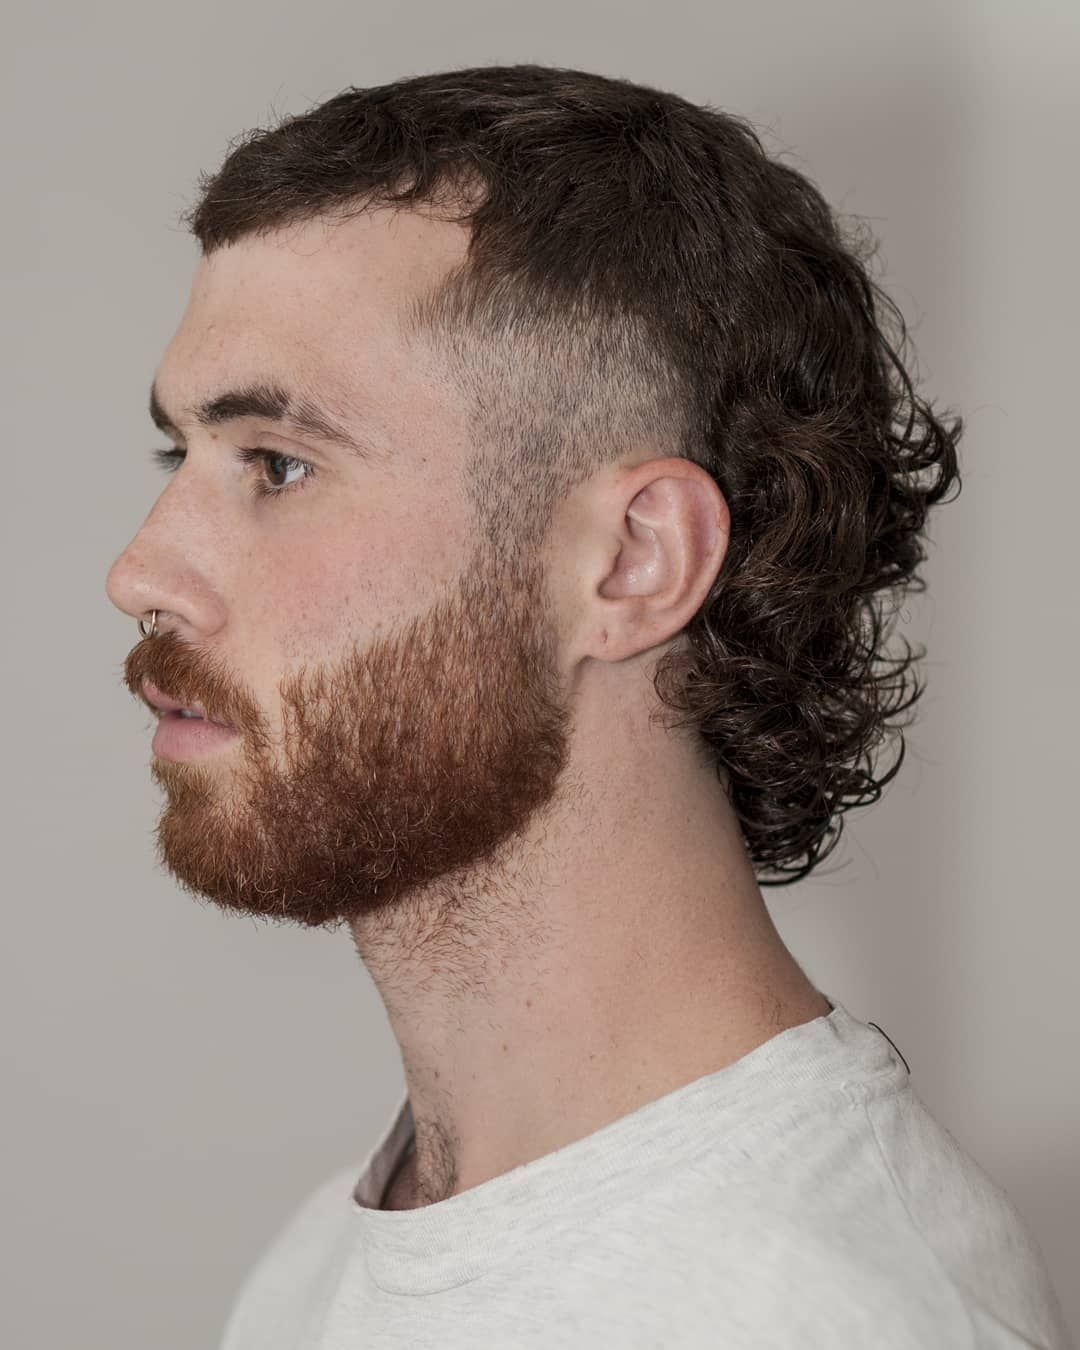 19 Fade Haircuts For Cool Curly Hair 2020 Styles In 2020 Mullet Haircut Mullet Hairstyle Fade Haircut